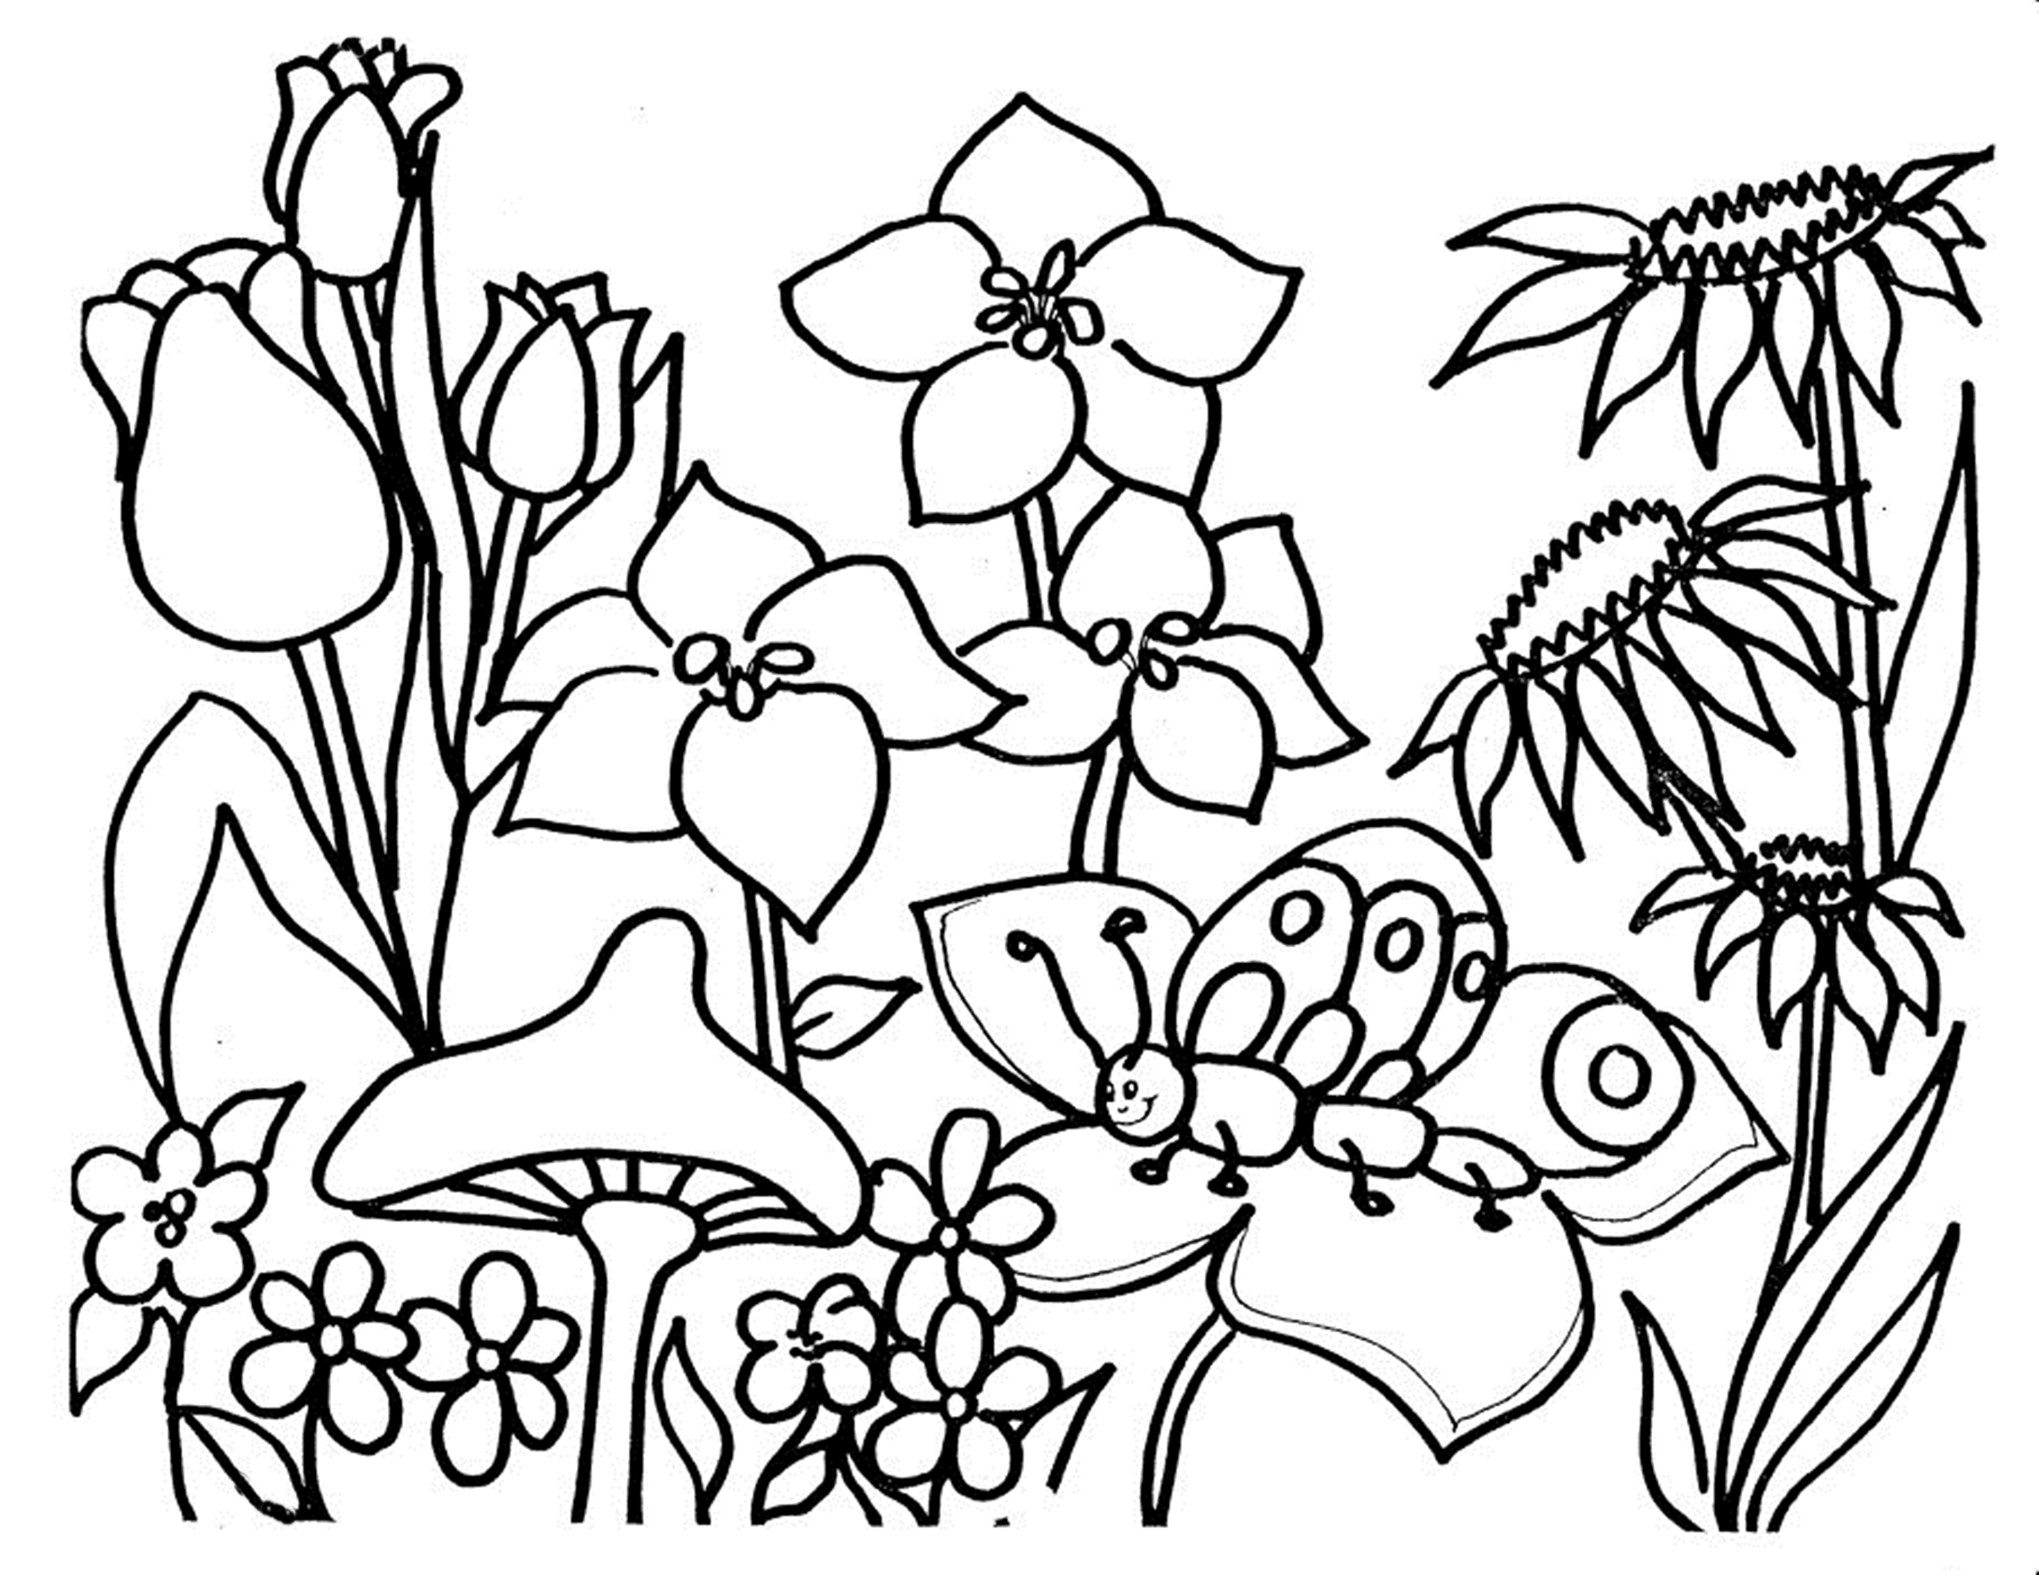 Flowers Coloring Pages Free Printable Kids Coloring Awesome Free Printable Flower Coloring Pages For Kids